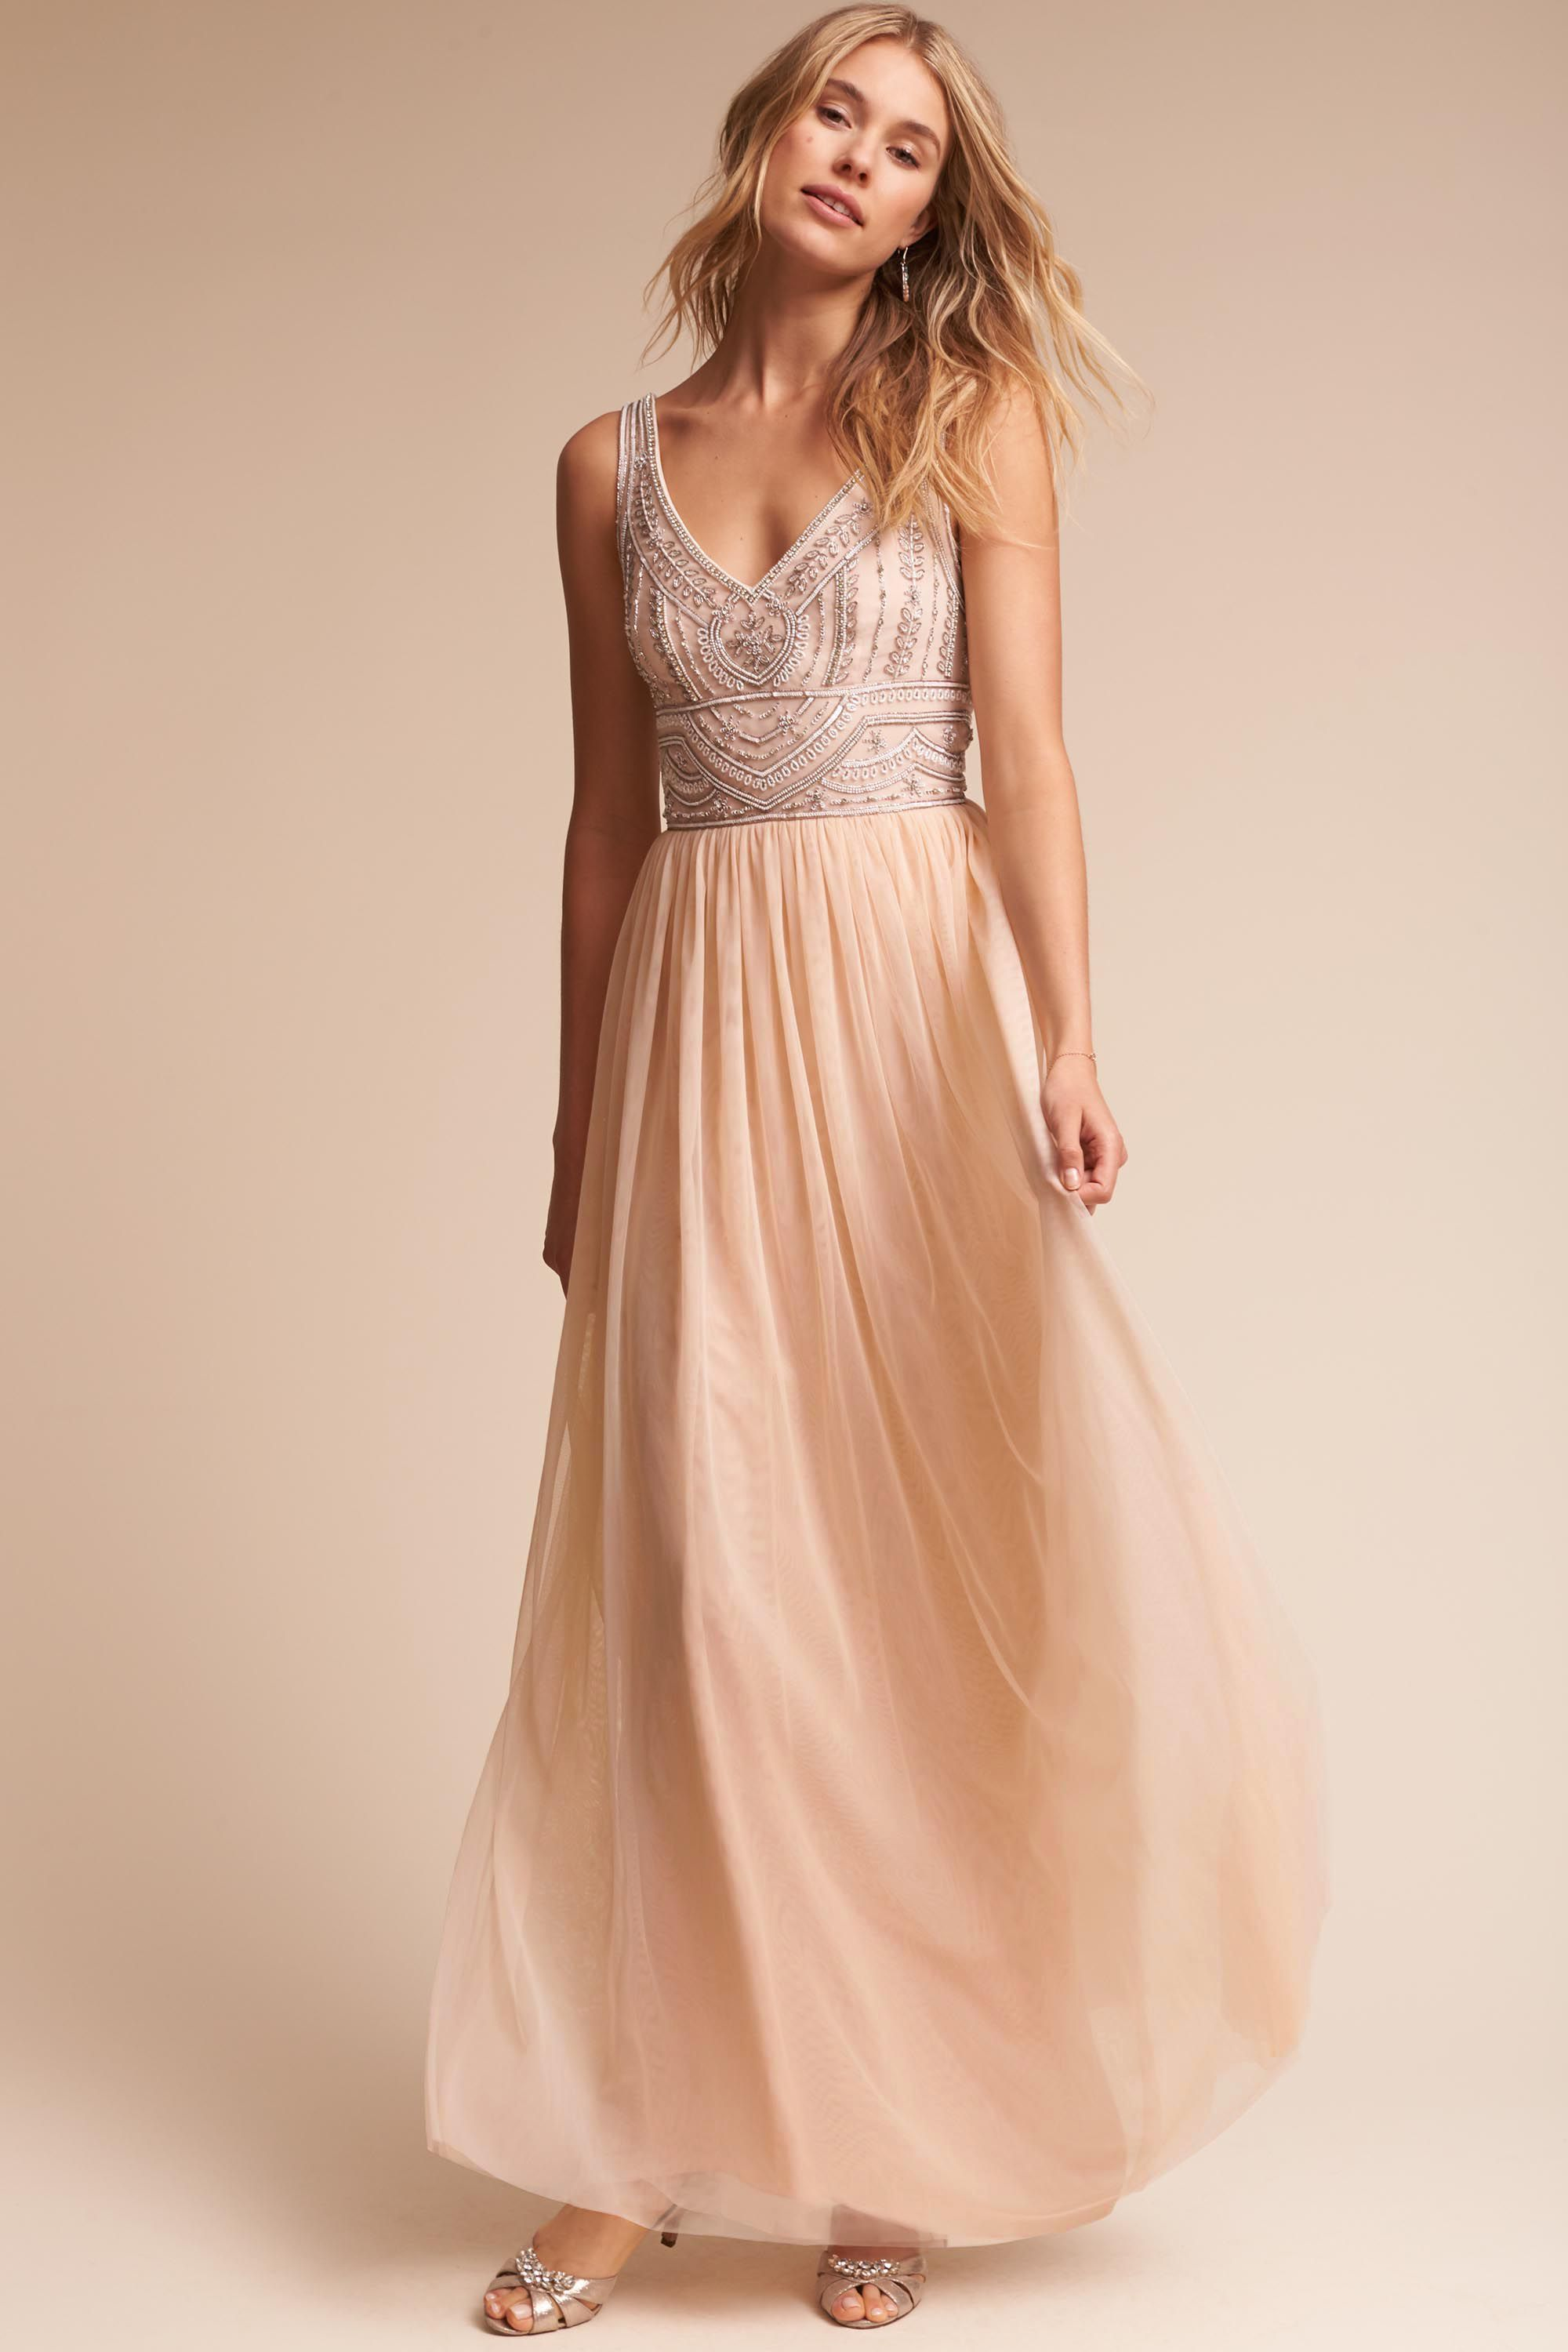 23+ Neutral colored dress info